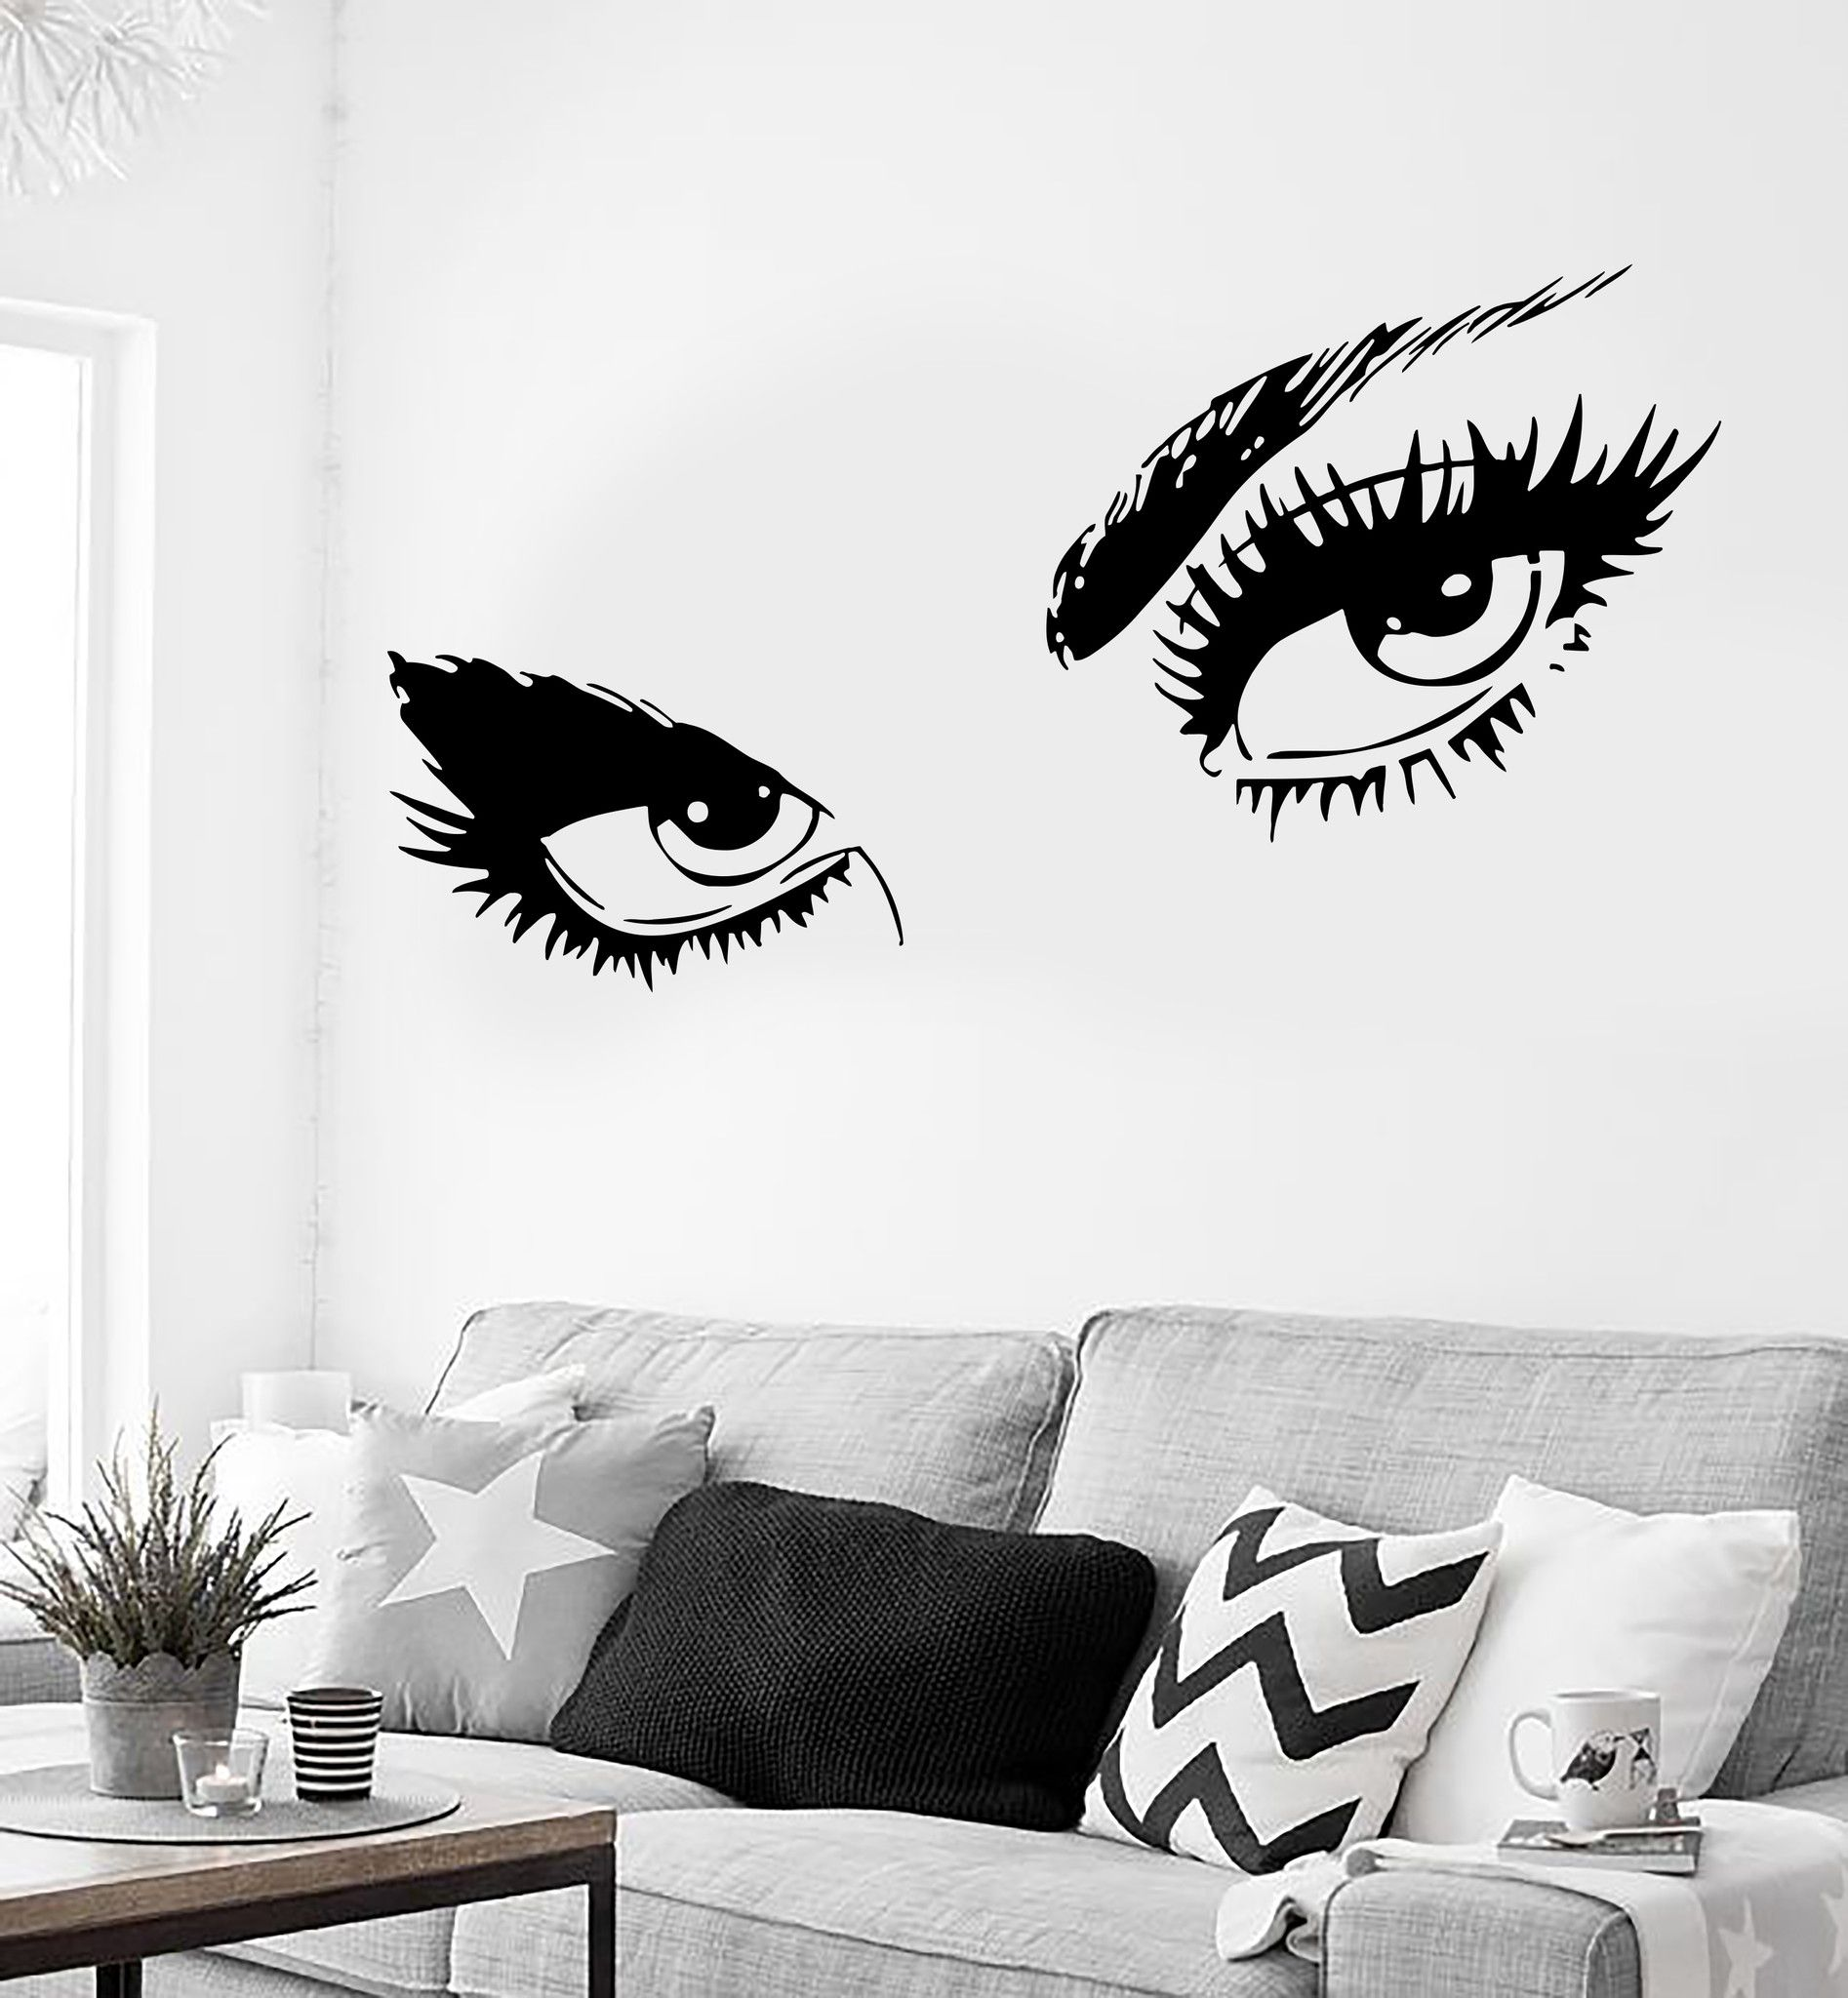 Wall Sticker Sexy Hot Eyes Girl Teen Woman Decal For